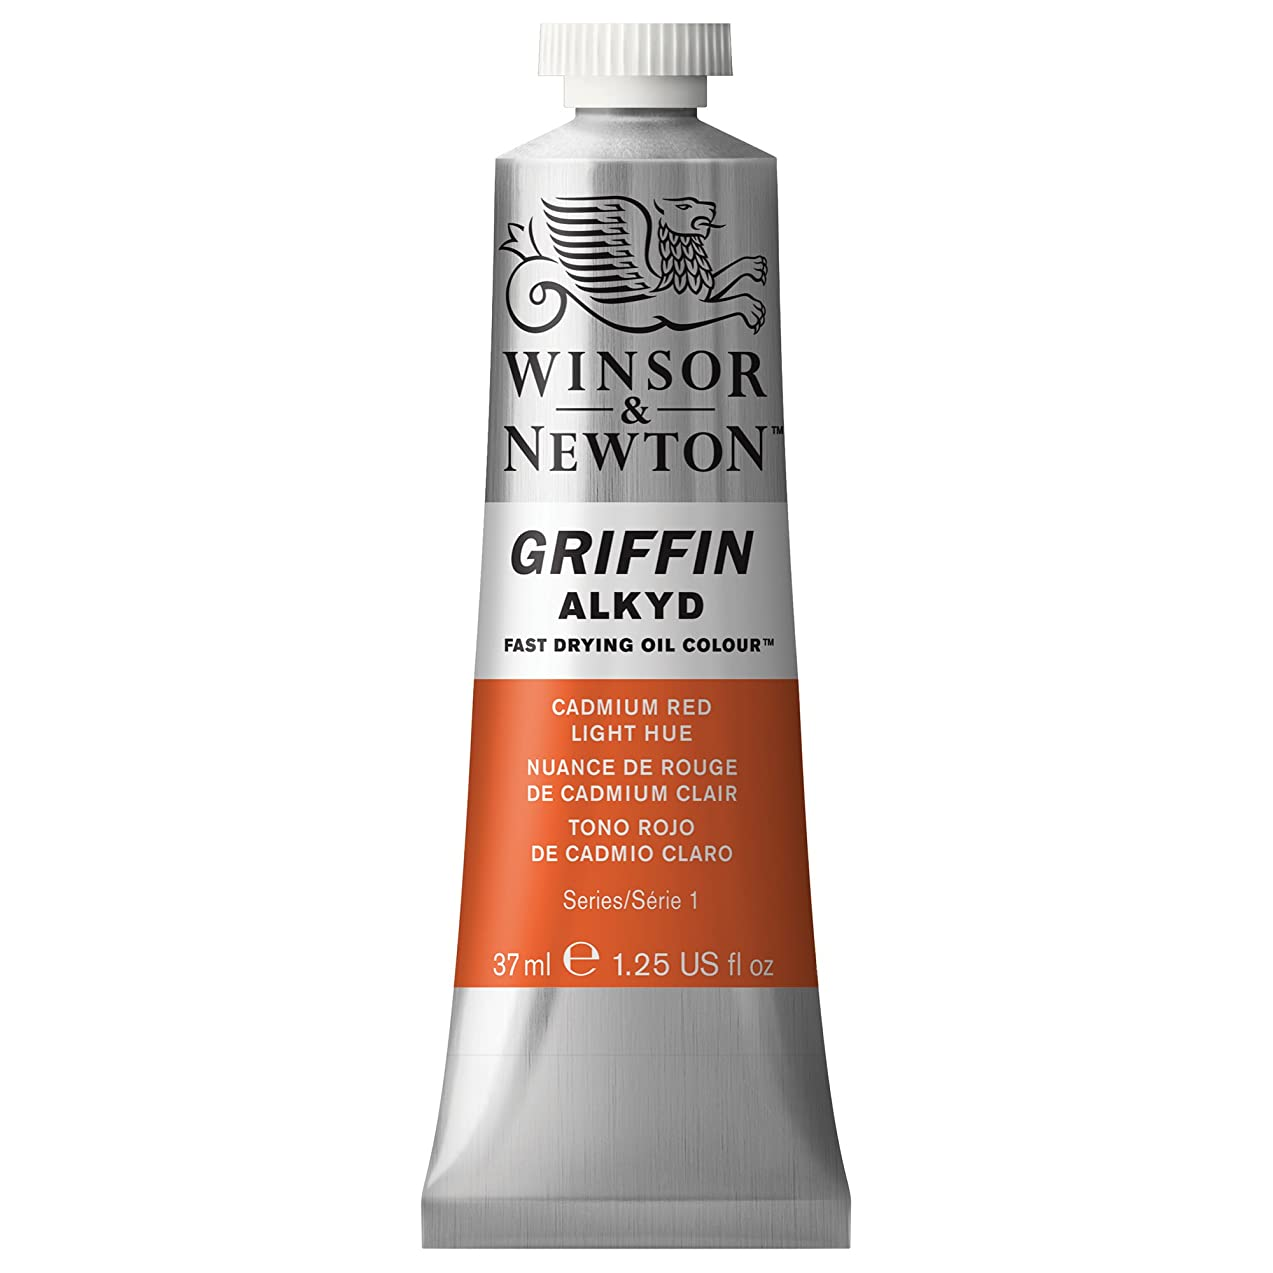 Winsor & Newton Griffin Alkyd Fast Drying Oil Colour Paint, 37ml tube, Cadmium Red Light Hue